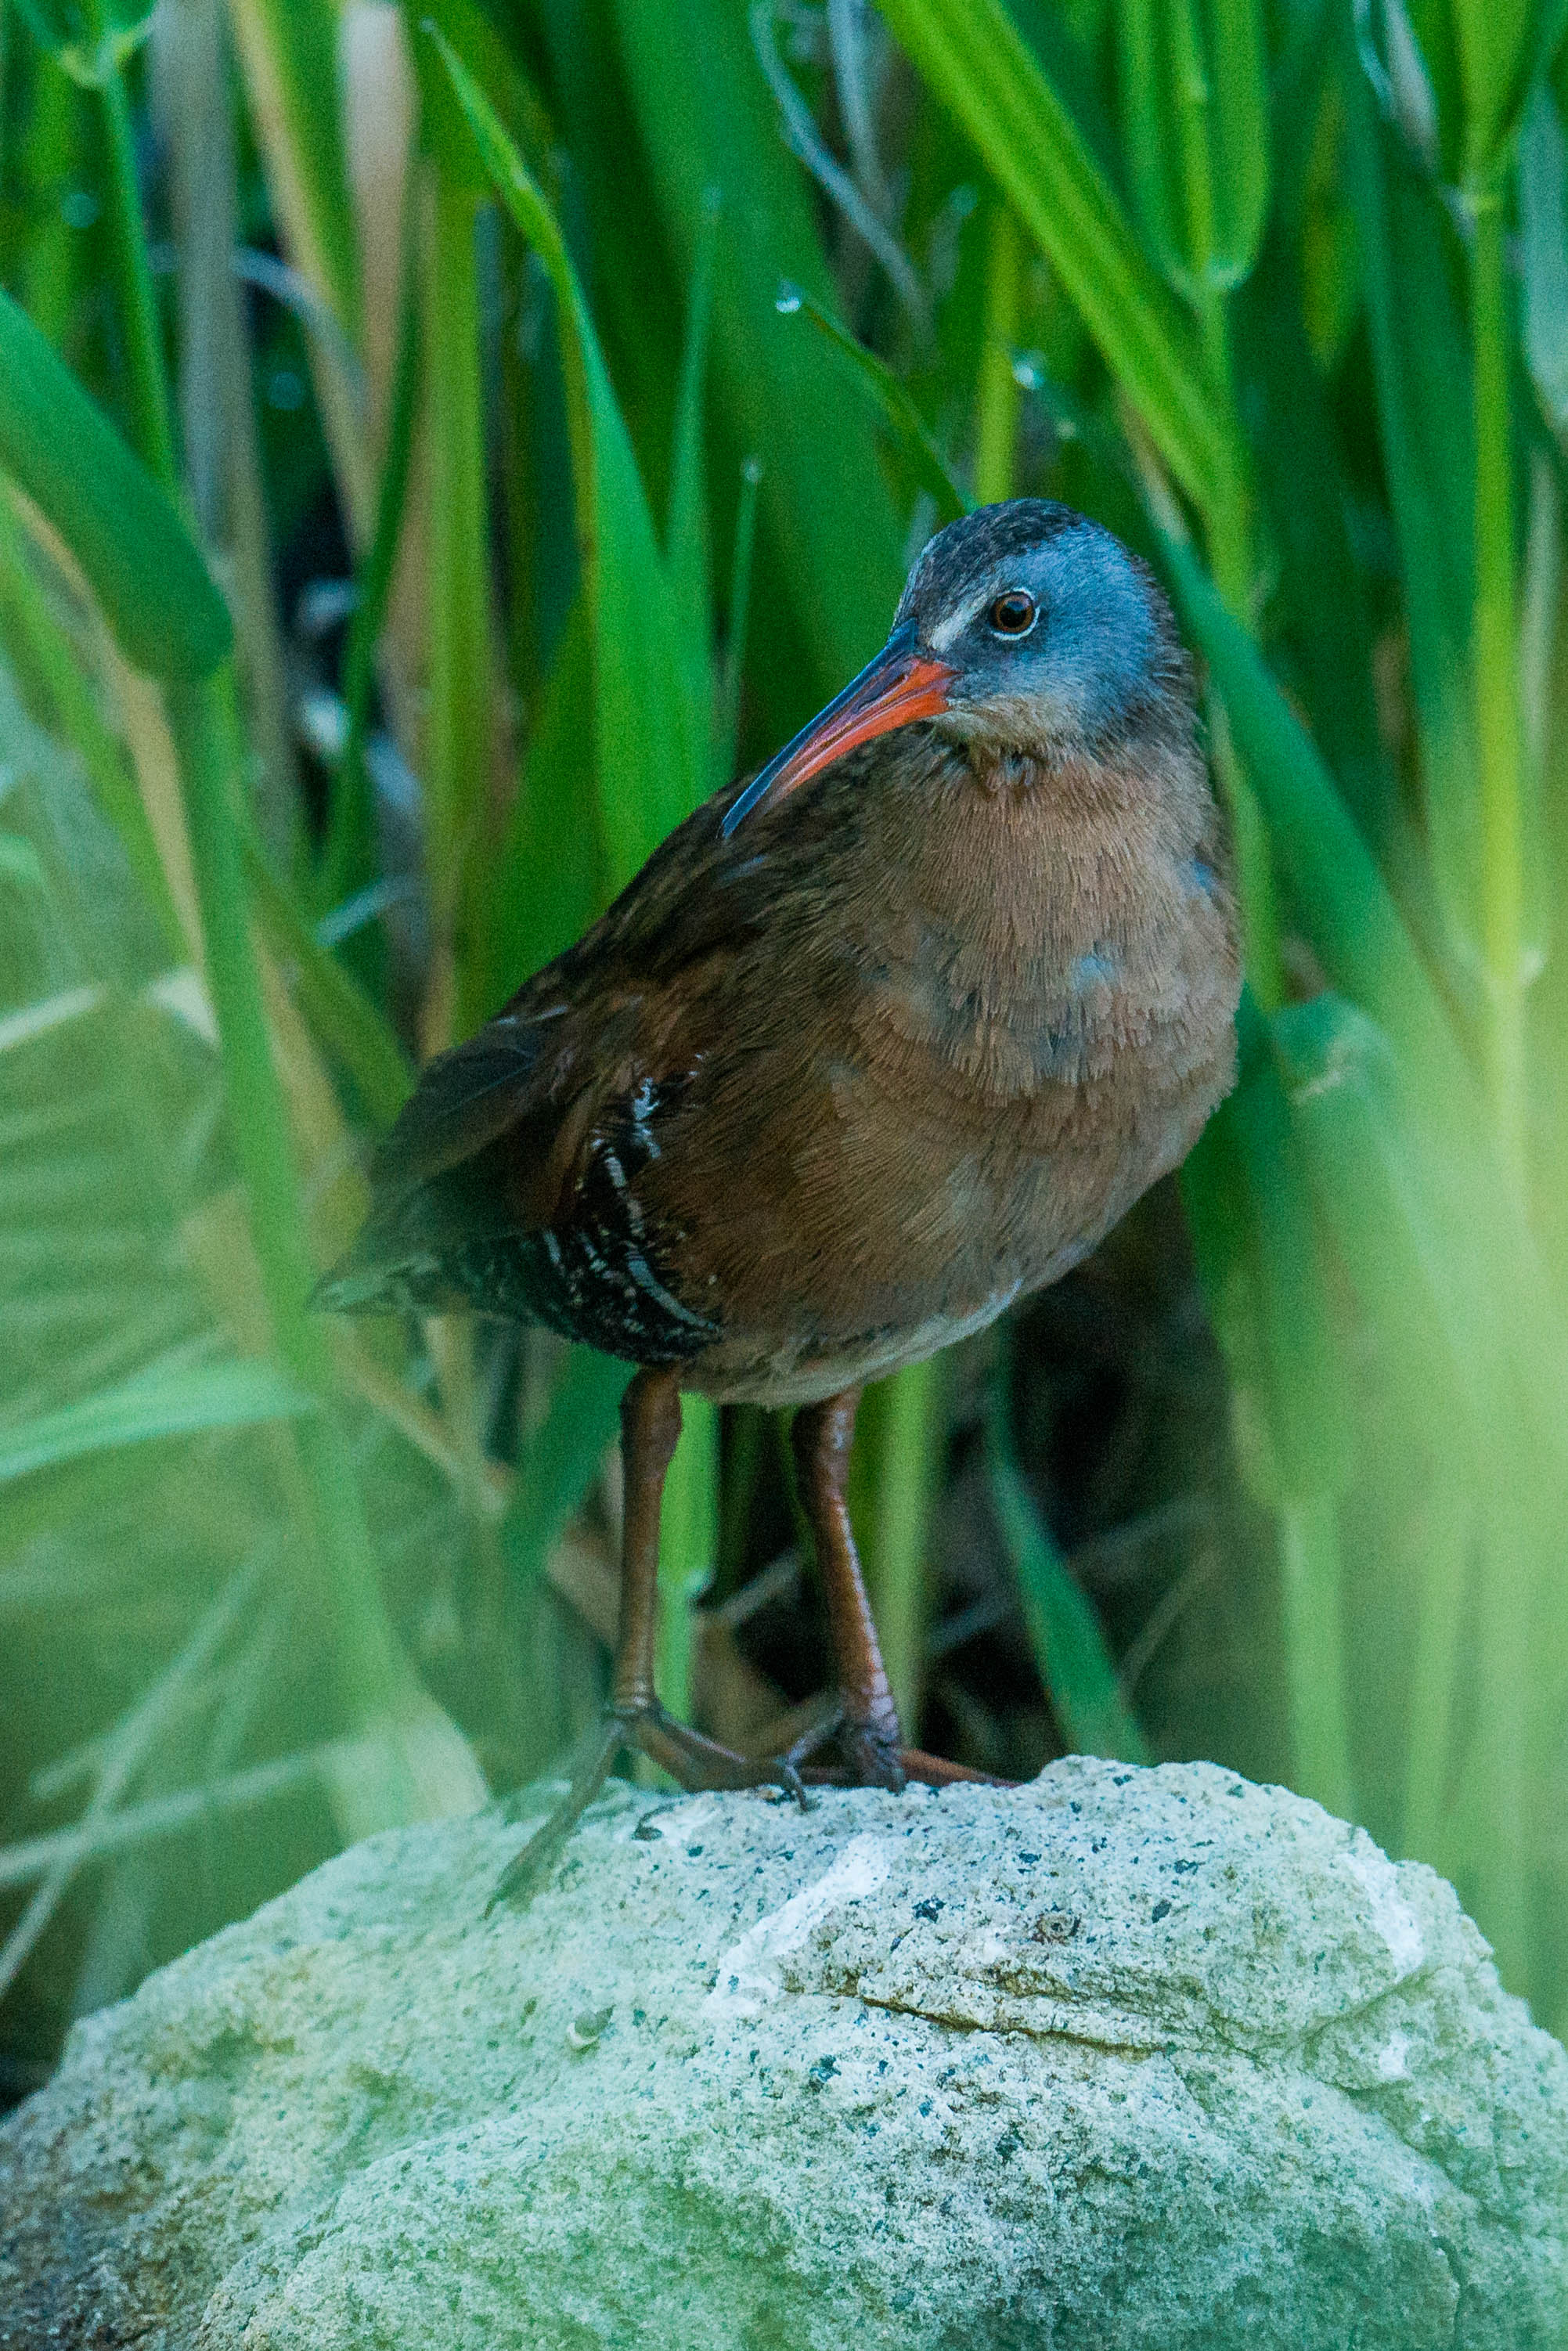 Virginia Rail (Rallus limicola) - Rancho San Rafael, WAS (NV) Jun-2018  A rare sighting of a Rail that gave me only seconds before heading back into the reeds.